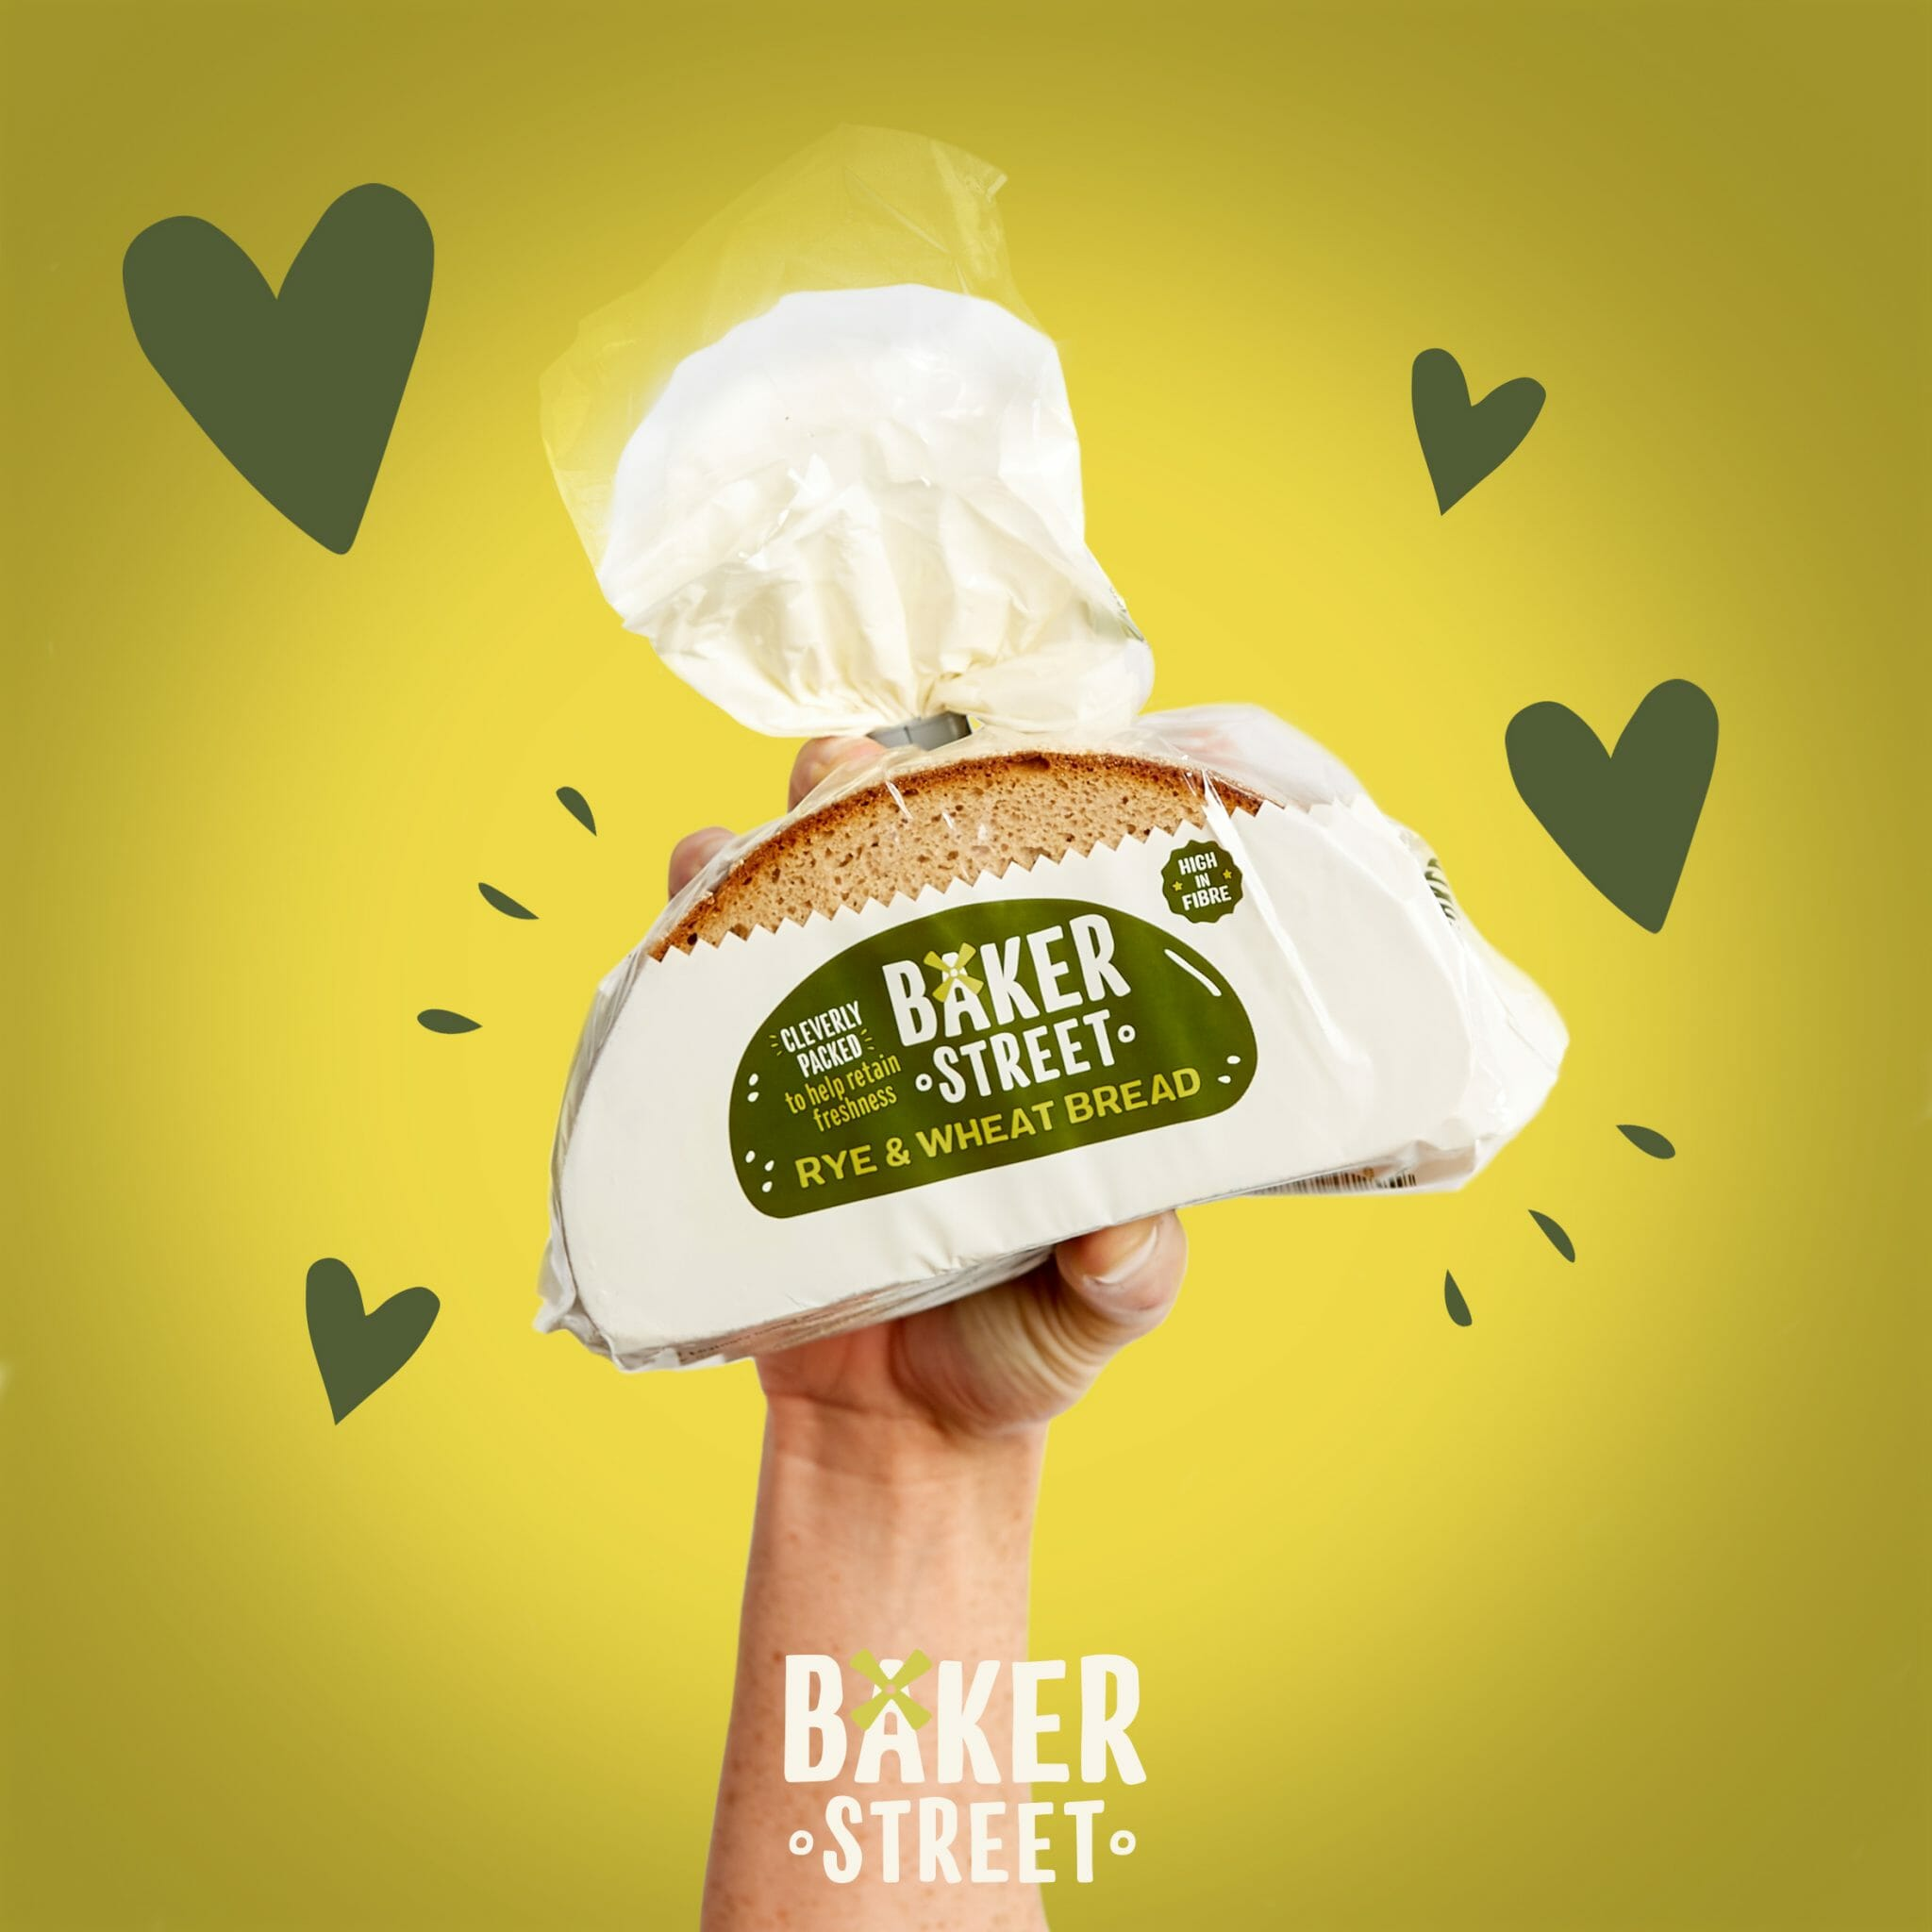 On a roll with Baker Street…